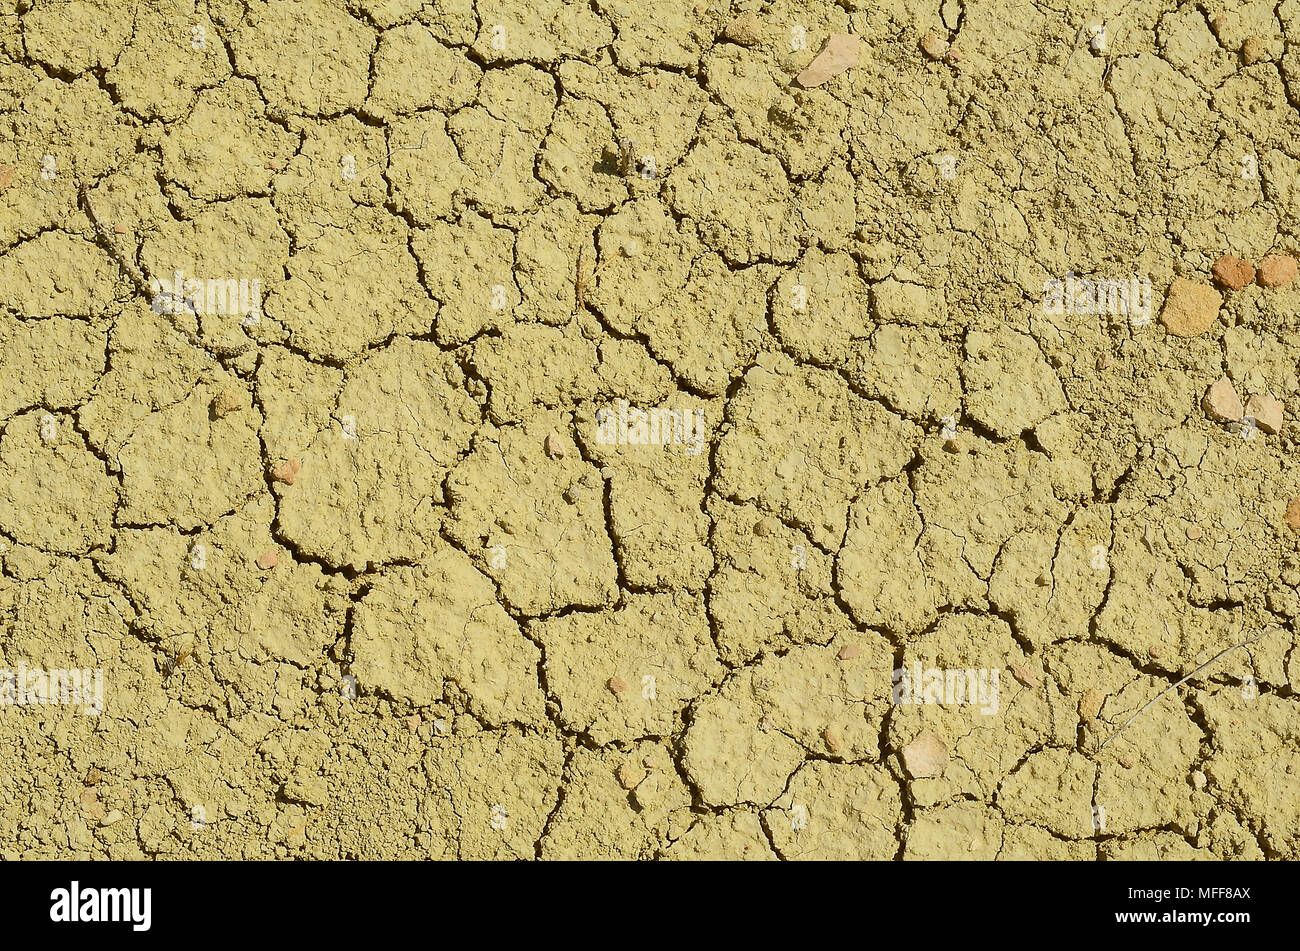 Texture of dry cracked soil from drought - Stock Image